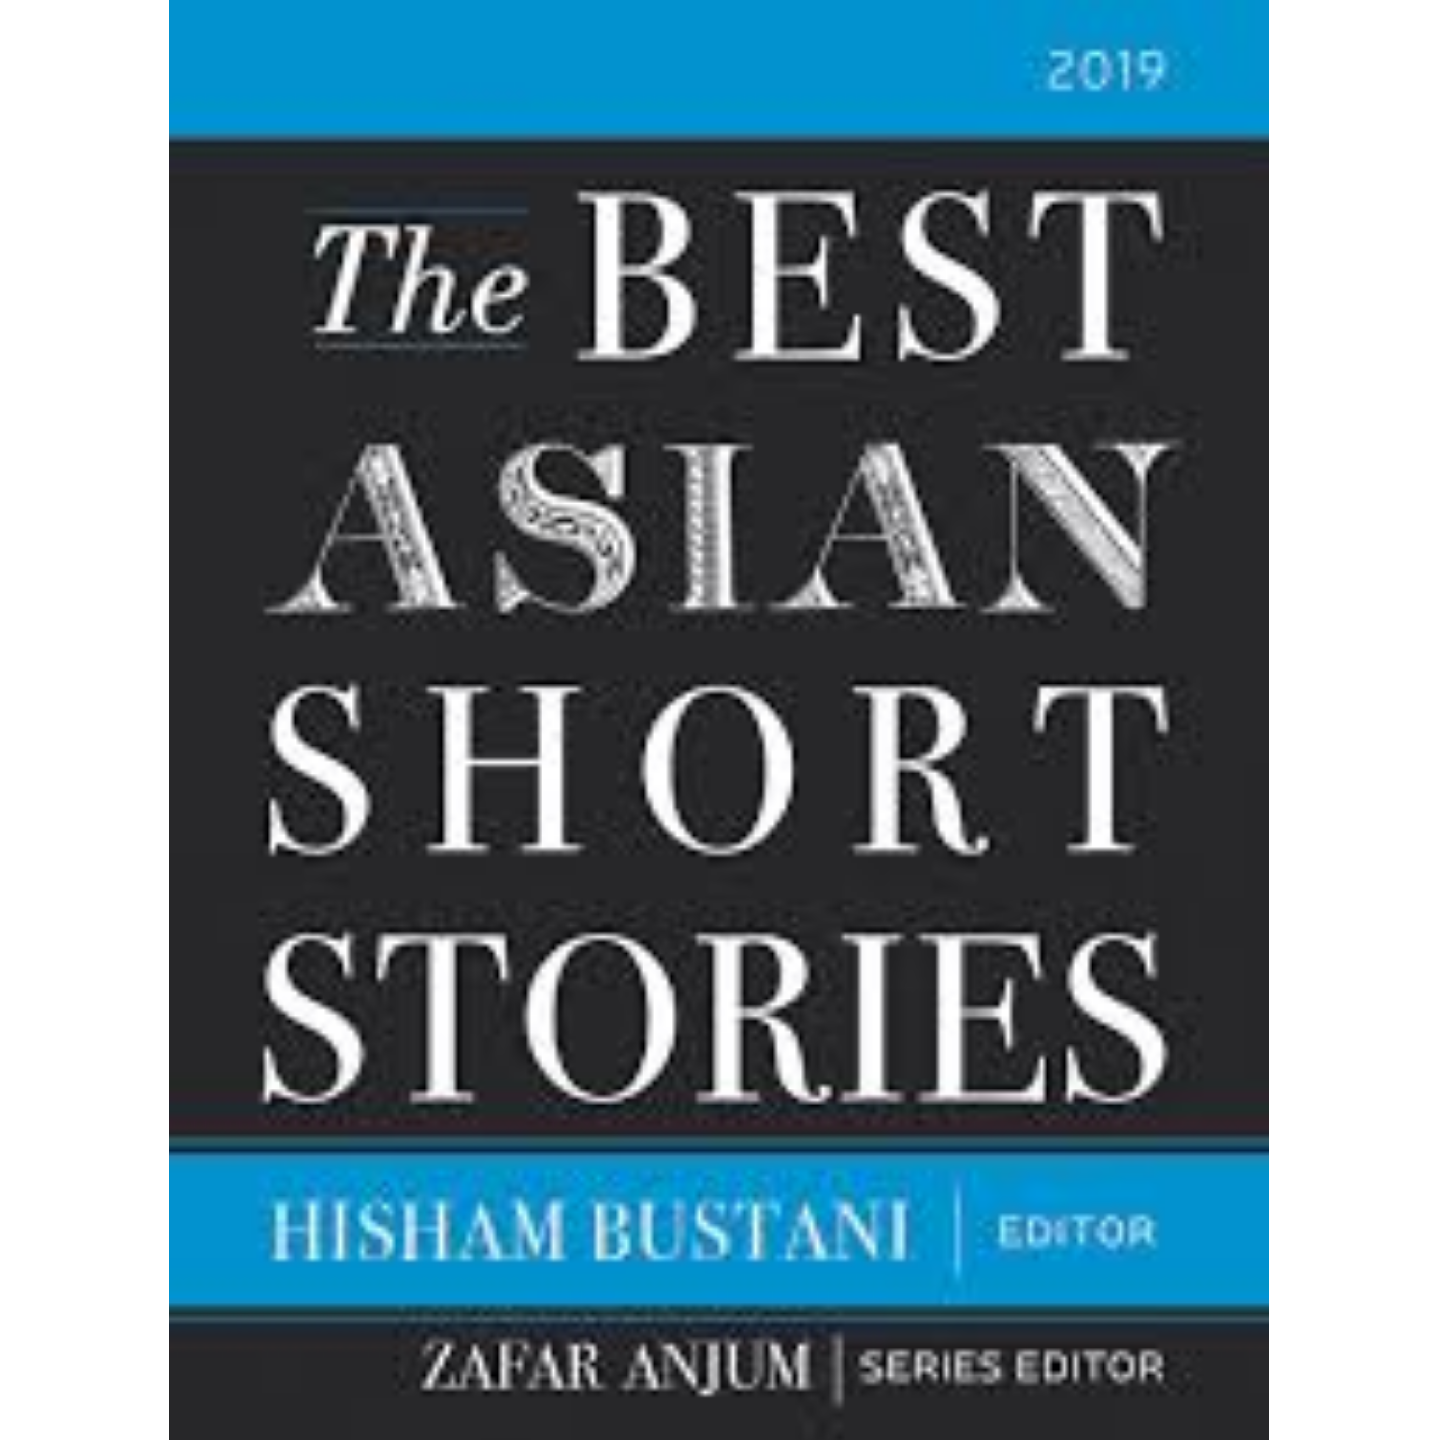 The Best Asian Short Stories 2019  English, Paperback, Series Editor Zafar Anjum, Editor Hisham Bustani